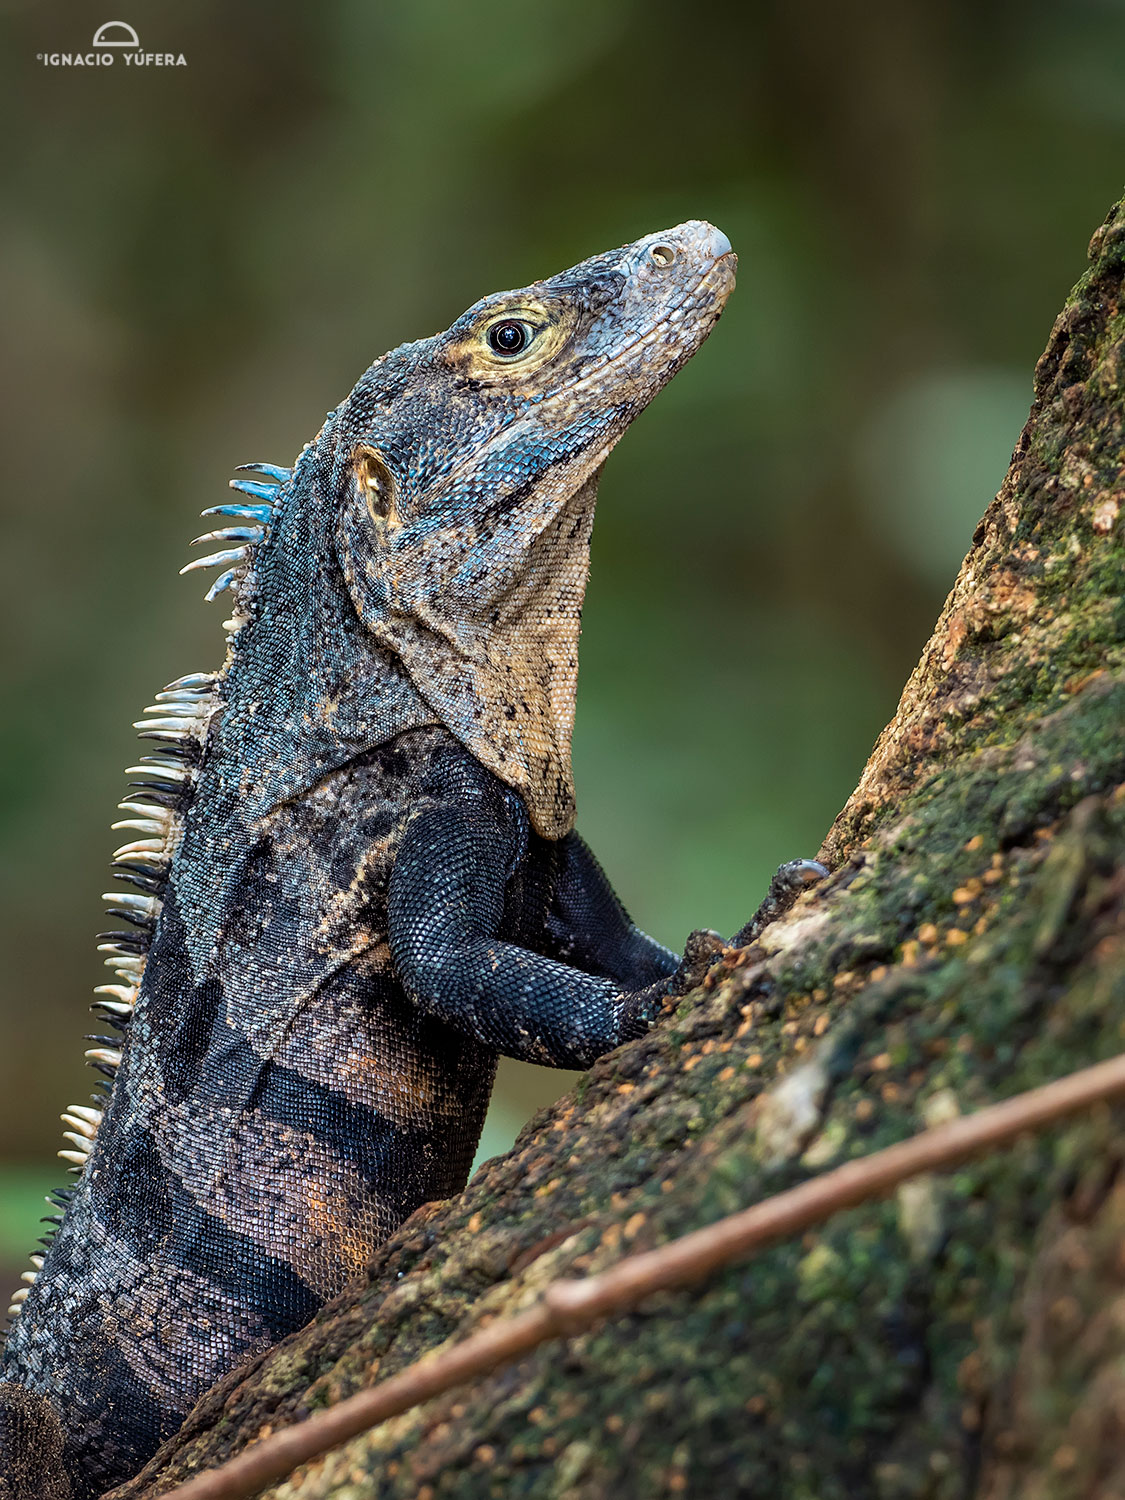 Spiny-tailed Iguana (Ctenosaura similis), Manuel Antonio National Park, Costa Rica